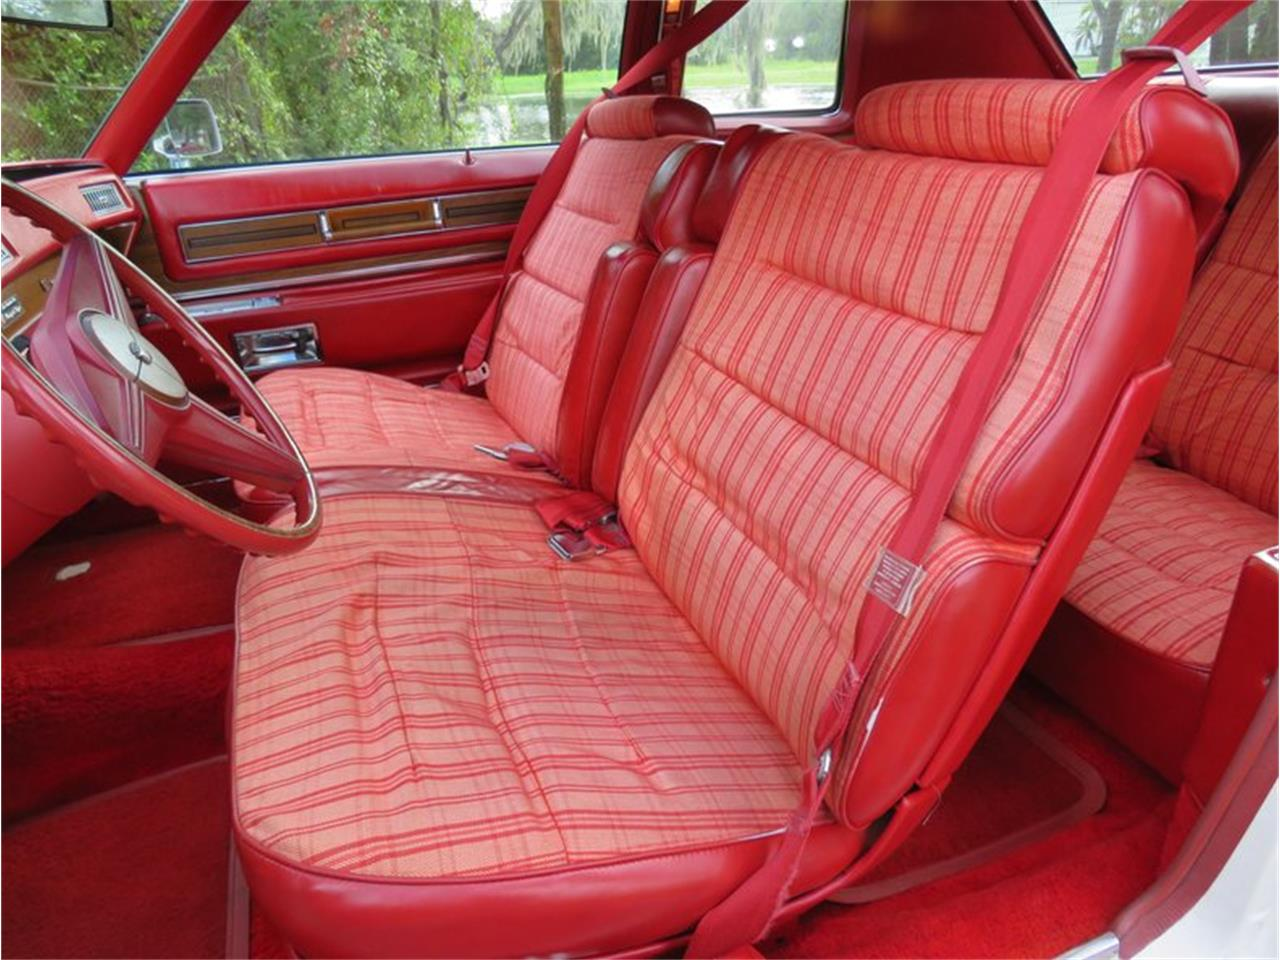 1975 Cadillac Coupe (CC-1413714) for sale in Lakeland, Florida